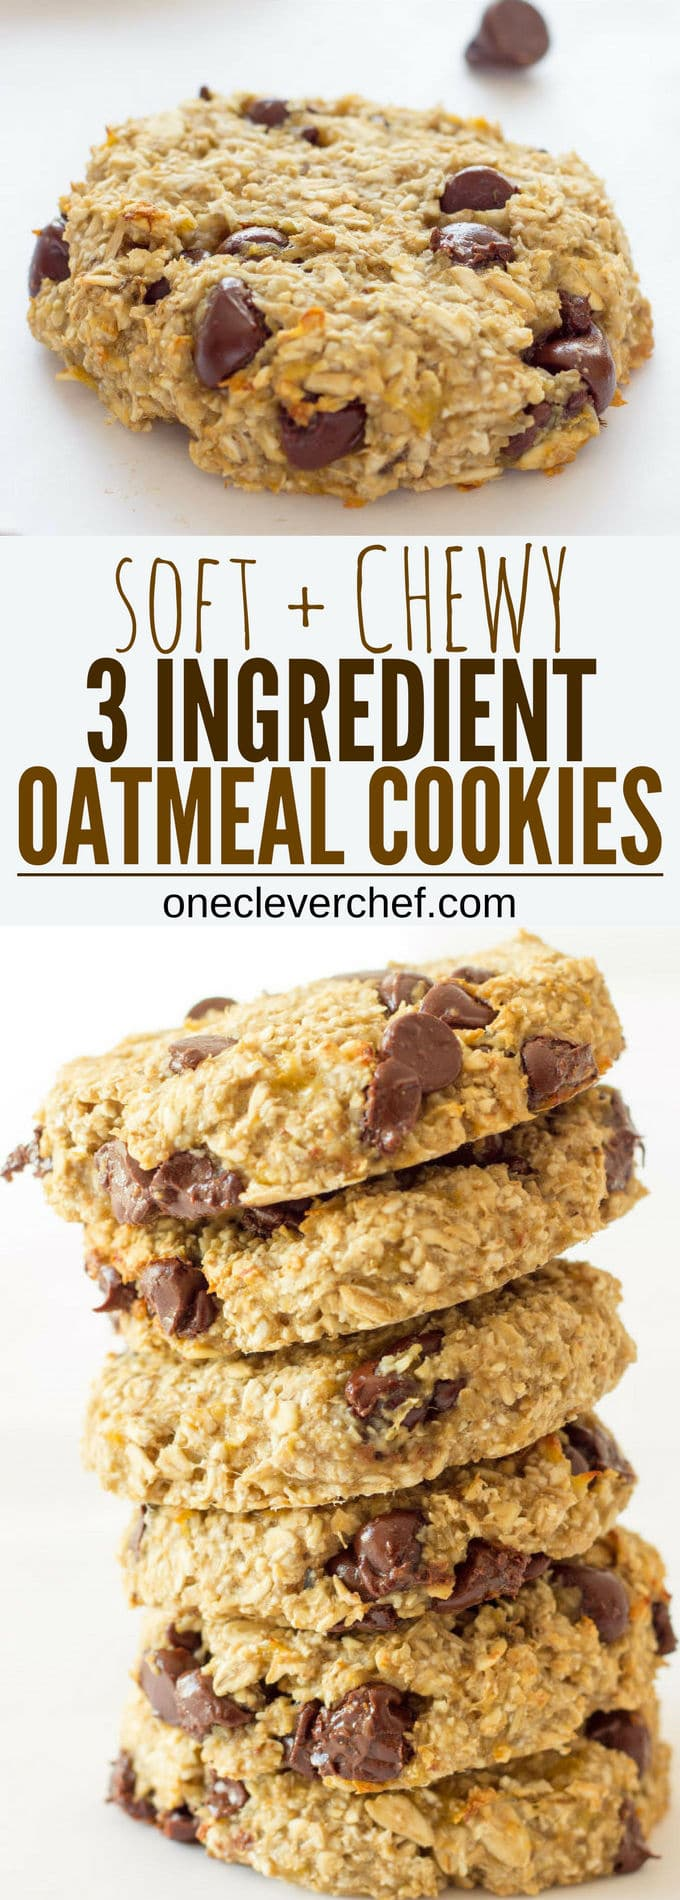 Ready under 20 minutes, these healthy, chewy and soft banana & oatmeal cookies are made with only 3 simple ingredients. They are a very simple and light version of the traditional oatmeal cookie with added dark chocolate chips. Flourless, eggless, low-calorie and low-fat these delicious cookies are made without butter, brown sugar or baking soda. Most homemade traditional oatmeal cookie recipes require that the dough is chilled before cooking, well, no need to refrigerate the dough for that recipe as the preparation holds very well on its own. Paleo, vegan, gluten-free and dairy-free this recipe is friendly to most diets trending right now. Are you on a low cholesterol diet? Give these a shot! | www.onecleverchef.com